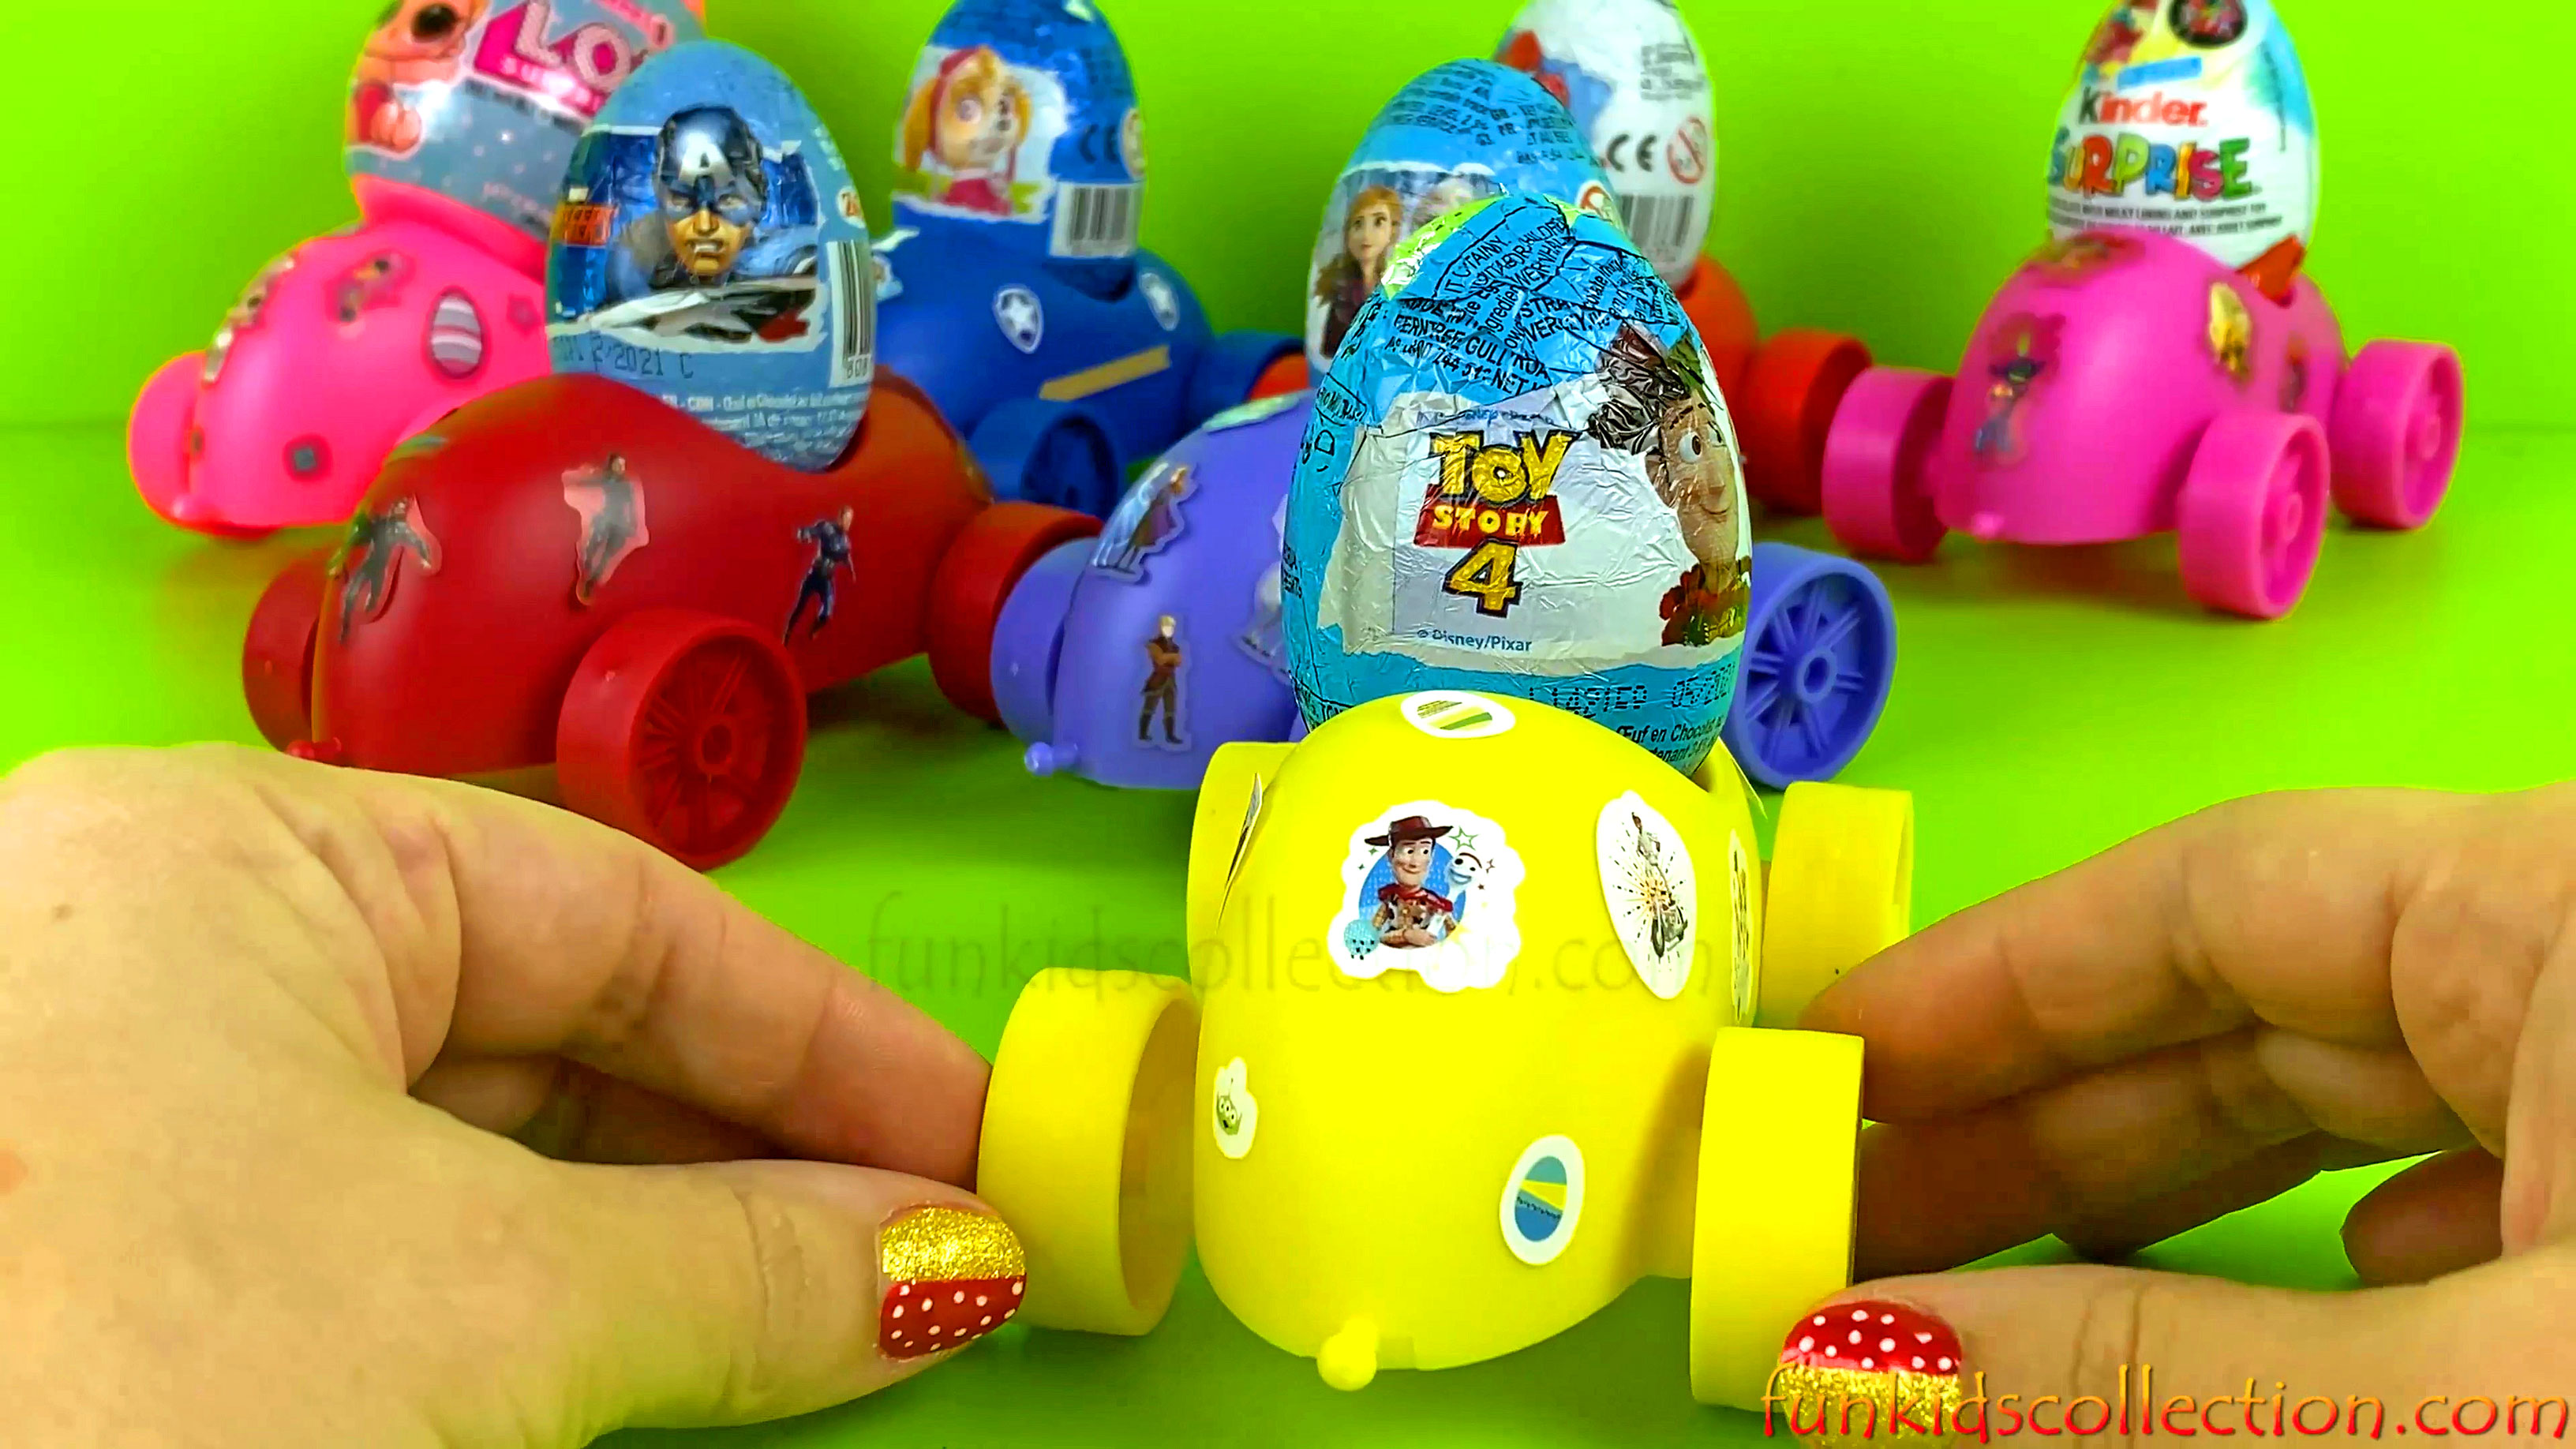 Learn Colors with Egg Racers Frozen 2 Paw Patrol Avengers Spiderman Lol Surprises Toy Story 4 Trolls